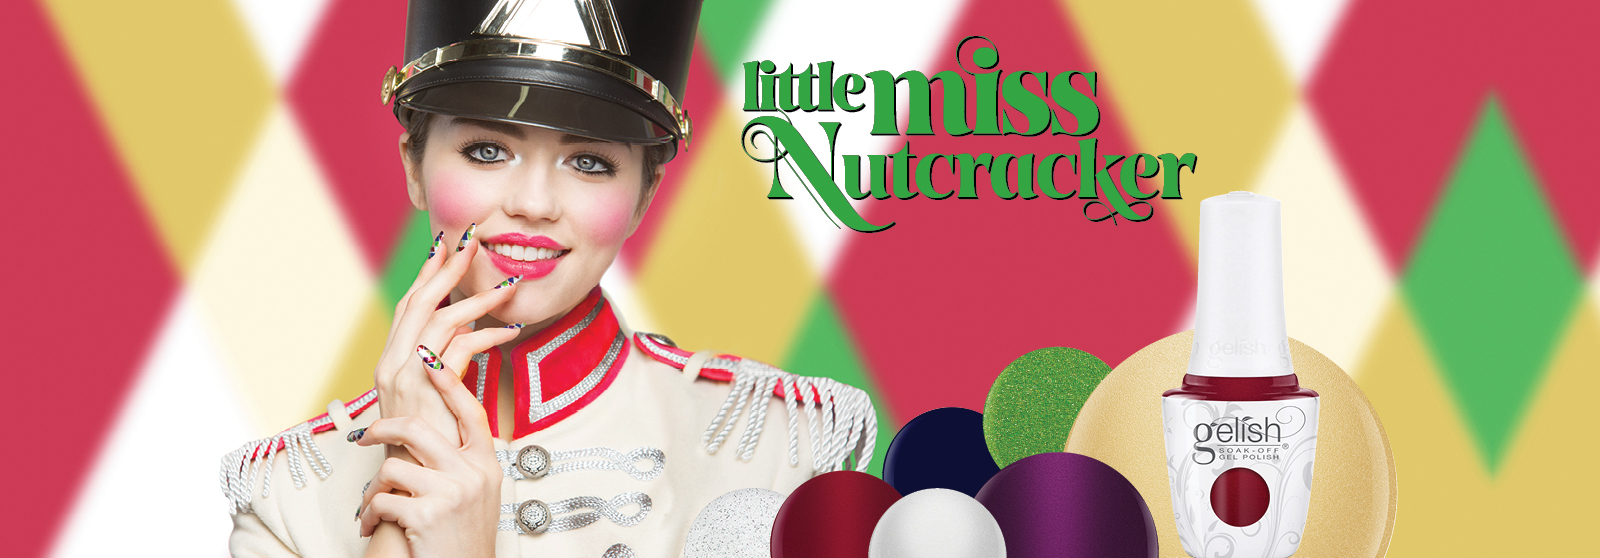 Little Miss Nutcracker Collection Holiday 2017